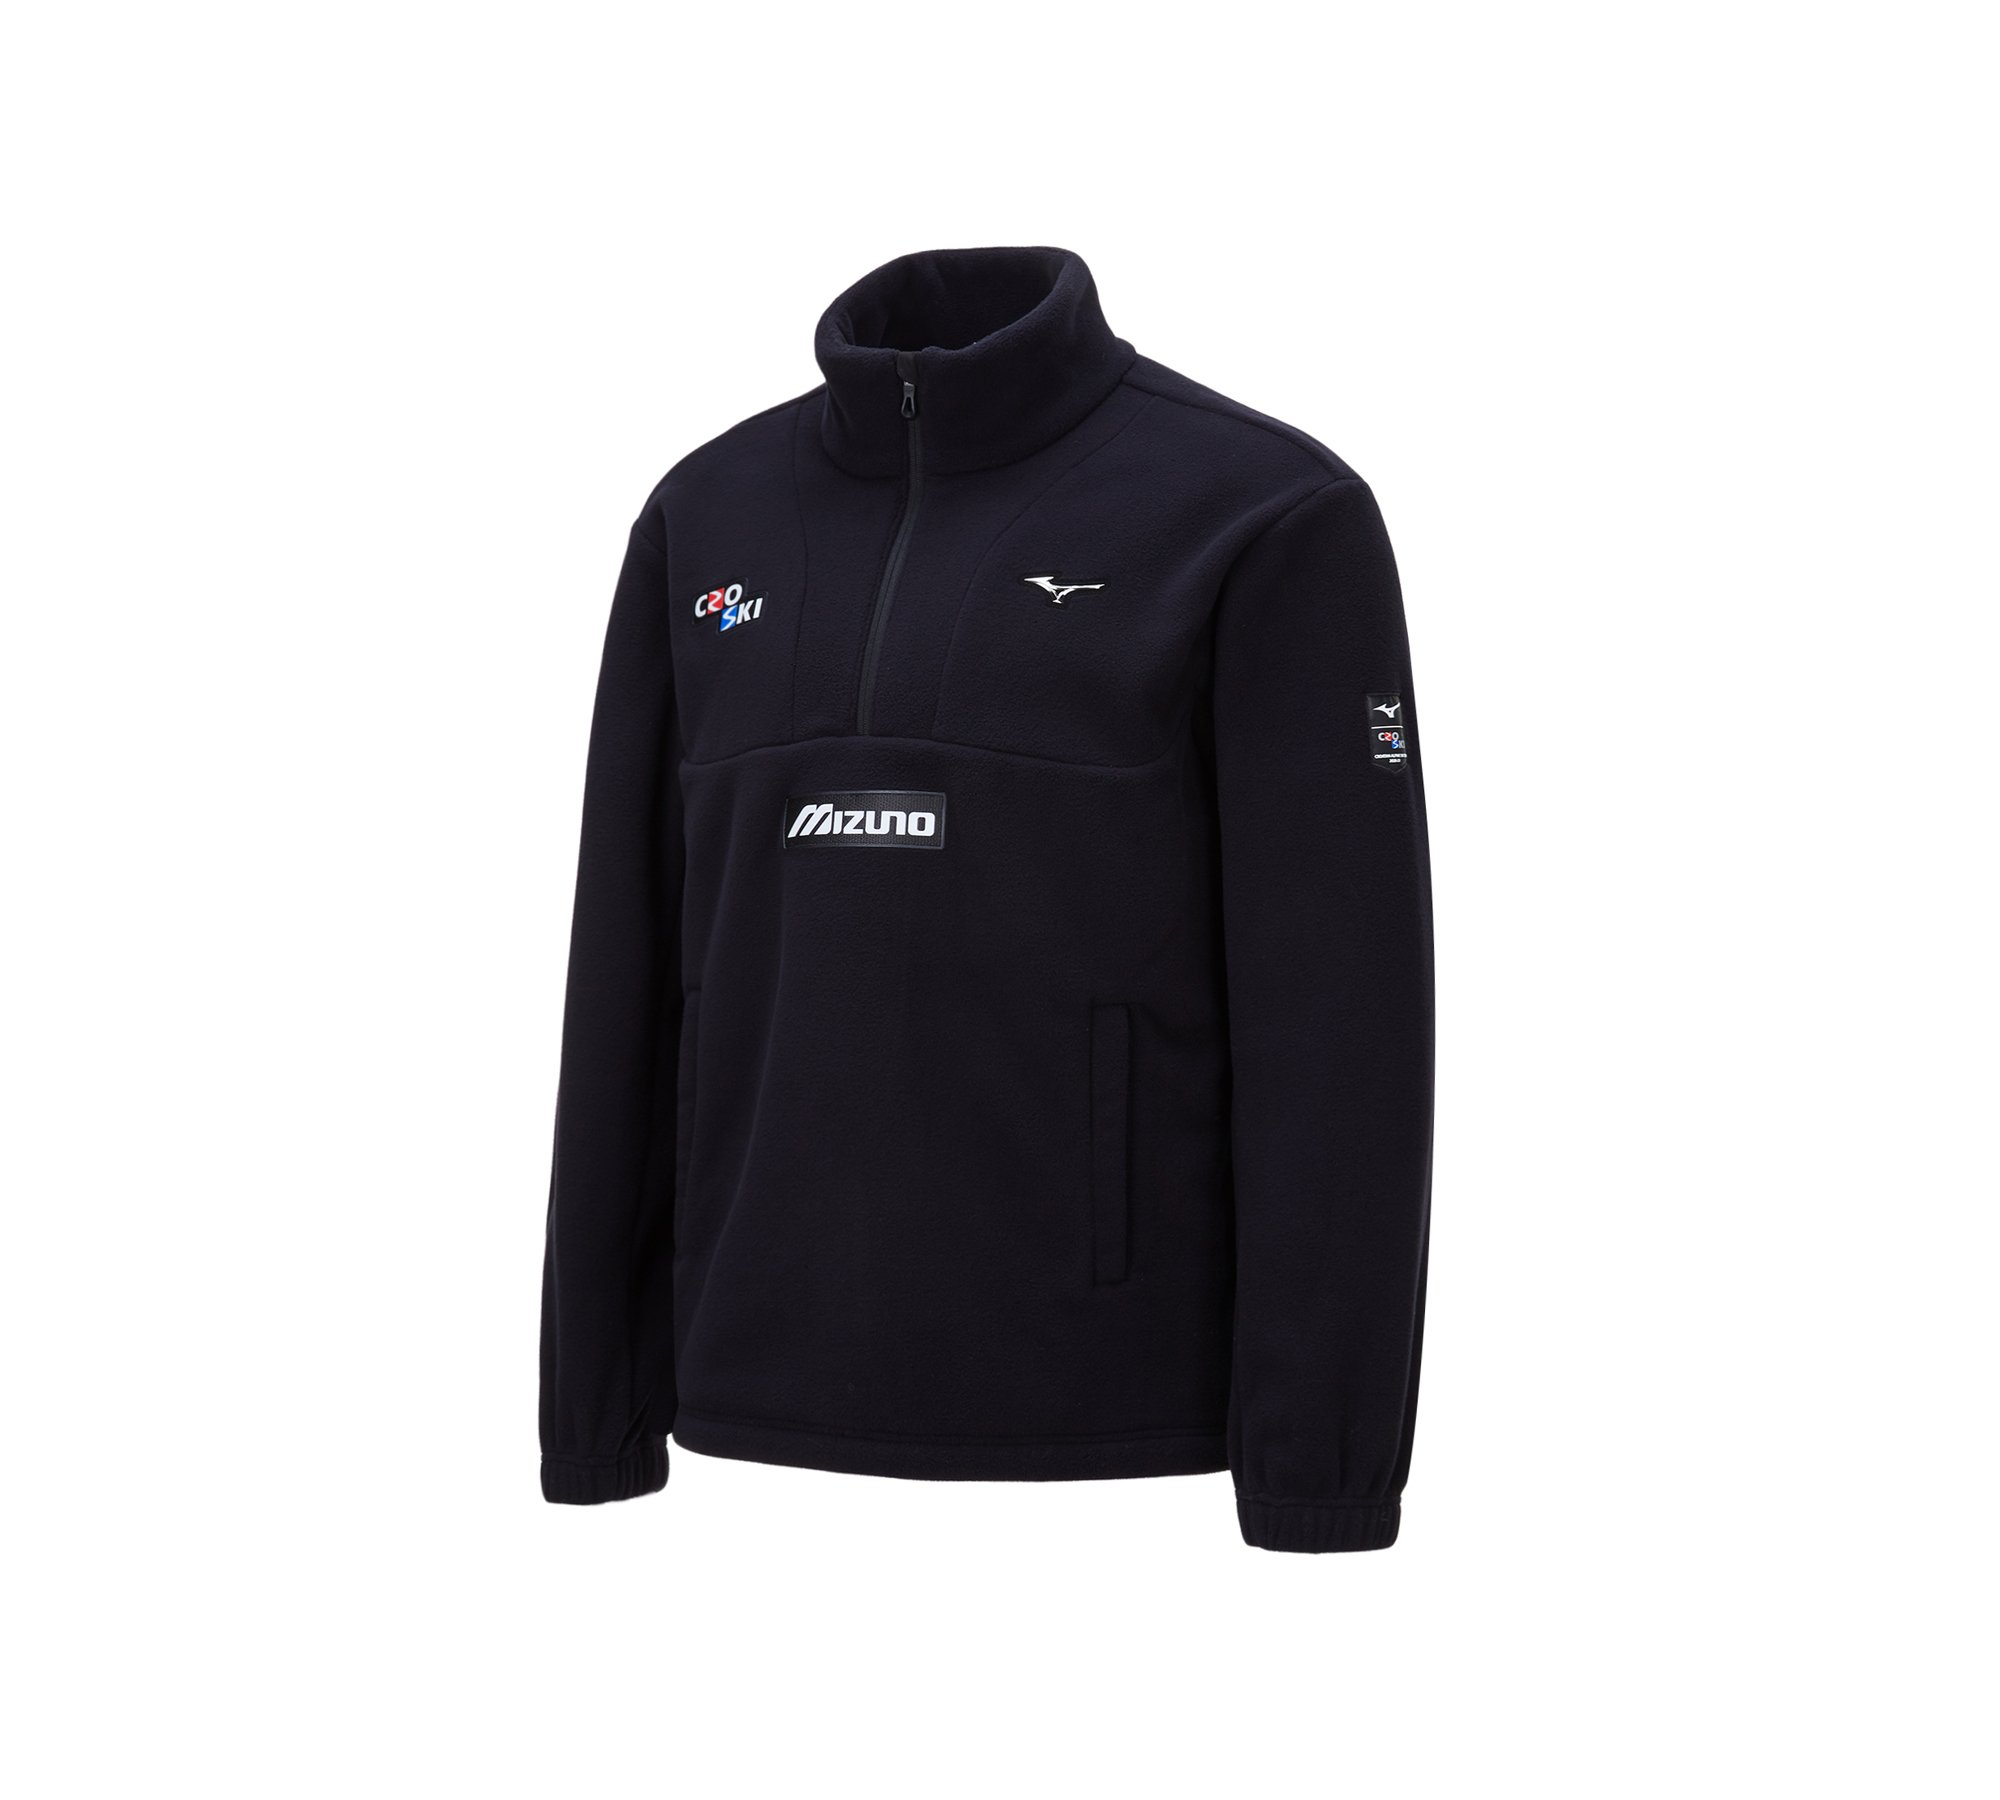 CRO SKI FLEECE ZIP UP_32YE0670, 블랙